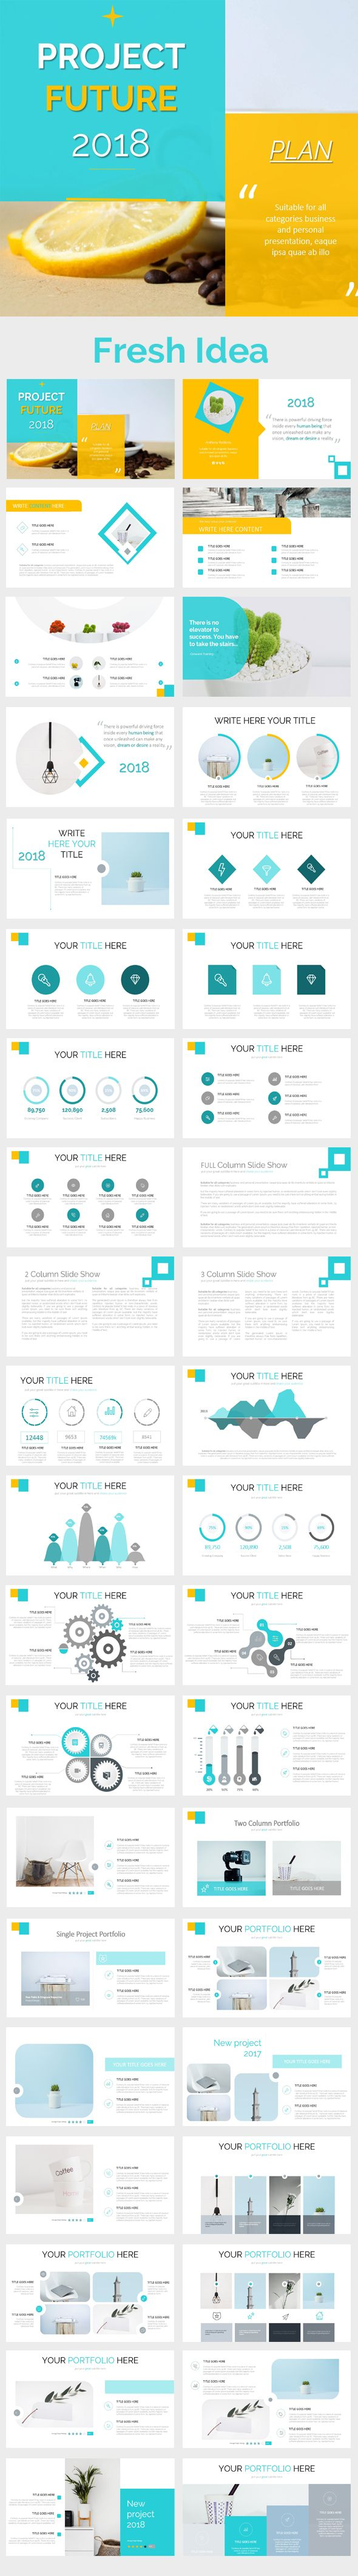 project 2018 powerpoint presentation template | powerpoint, Powerpoint templates